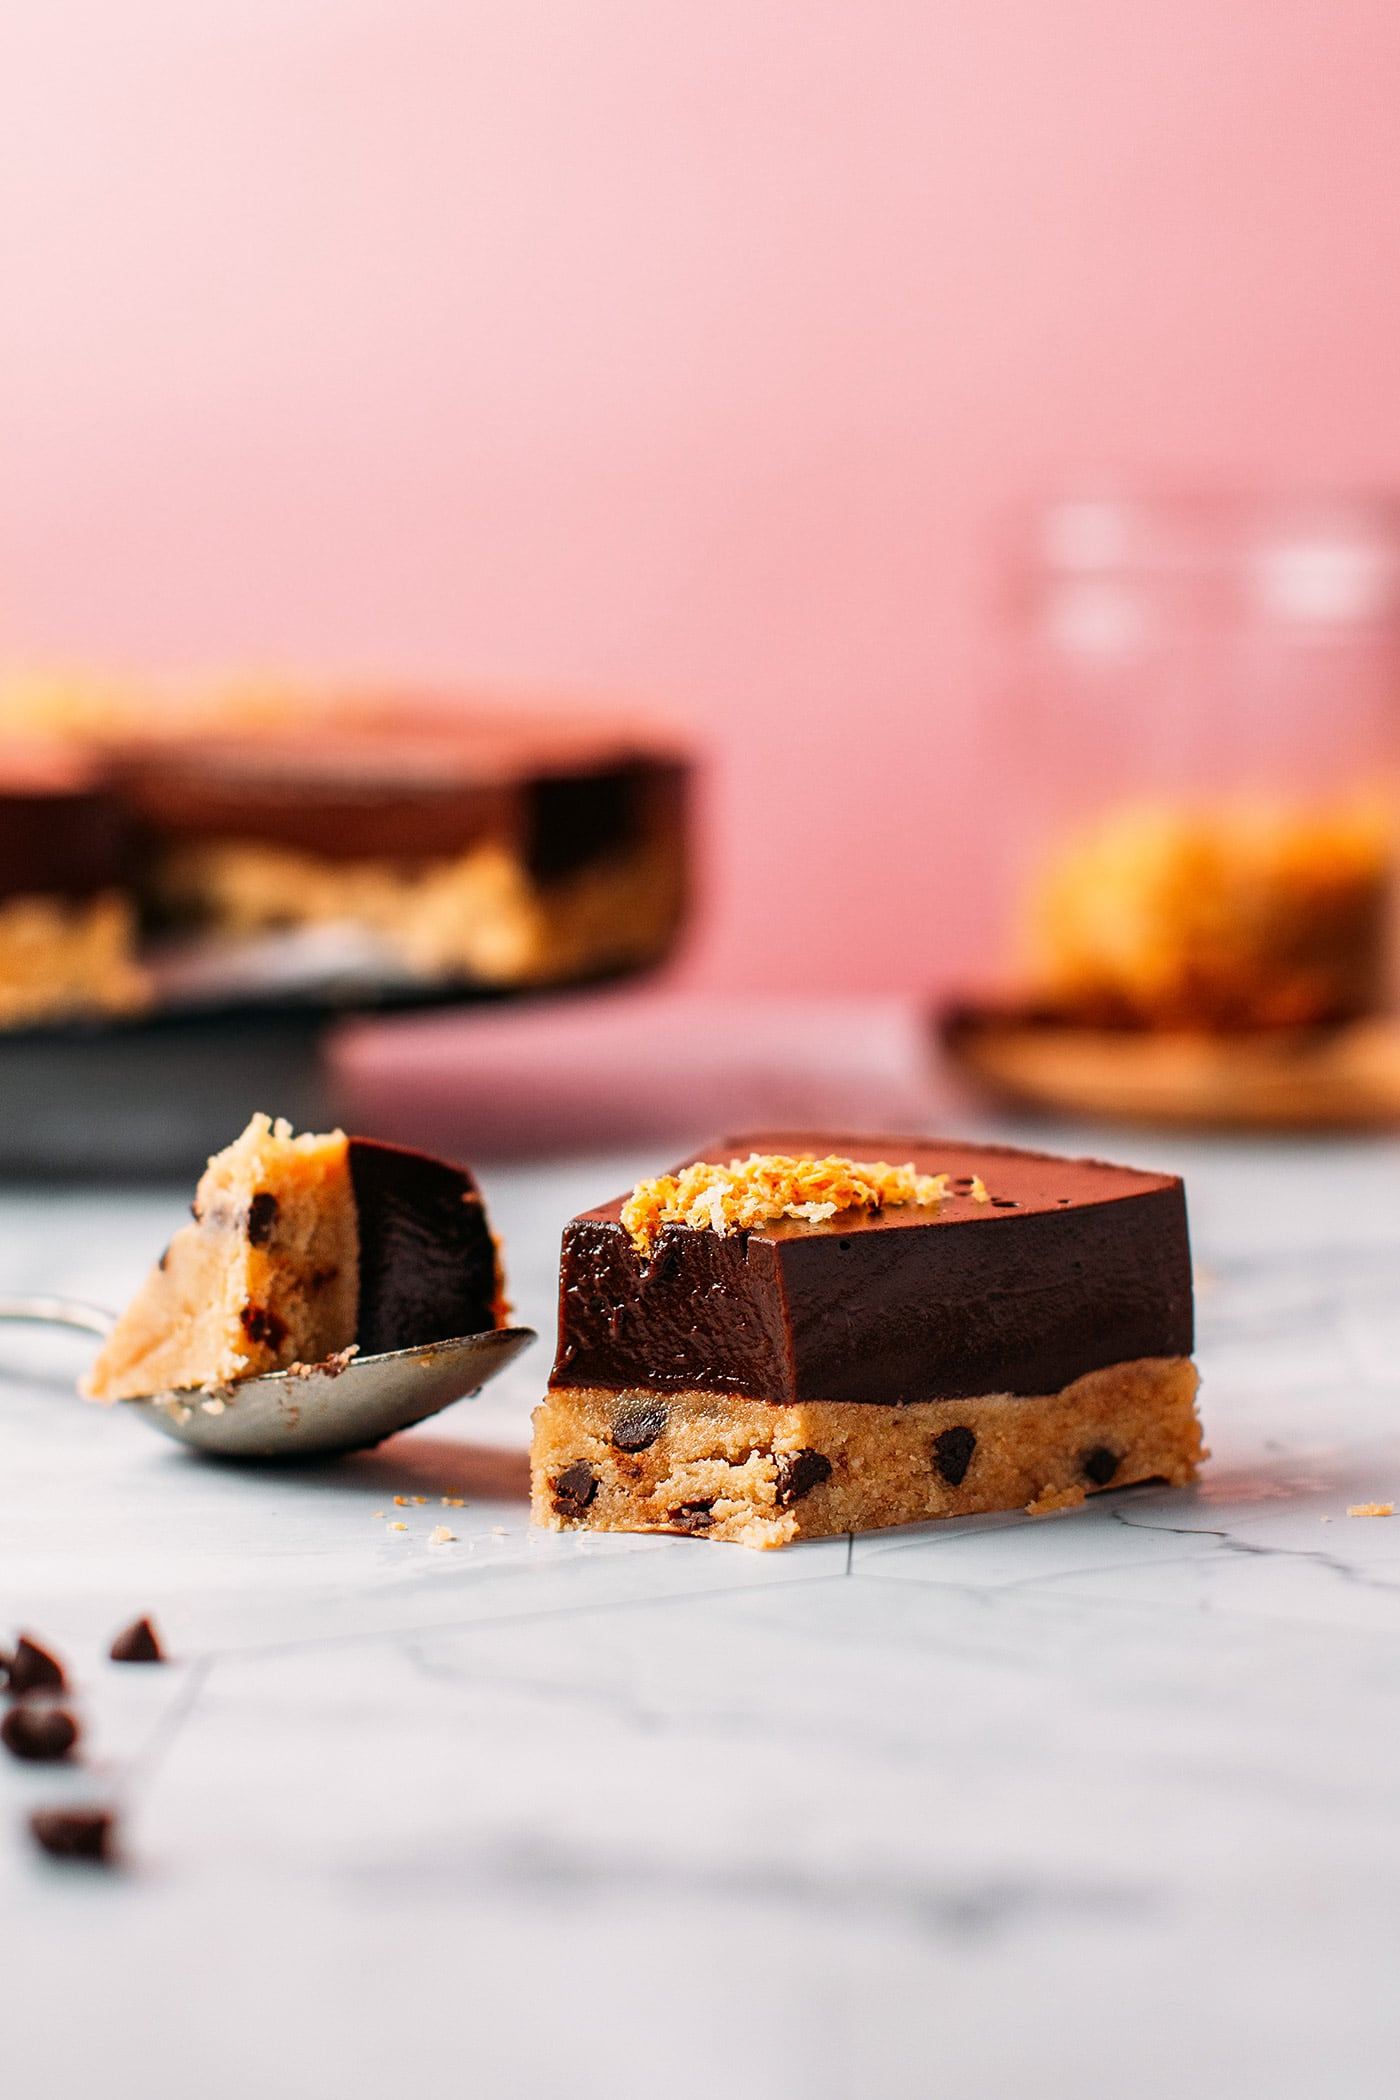 Chocolate Flan with Cookie Dough Crust